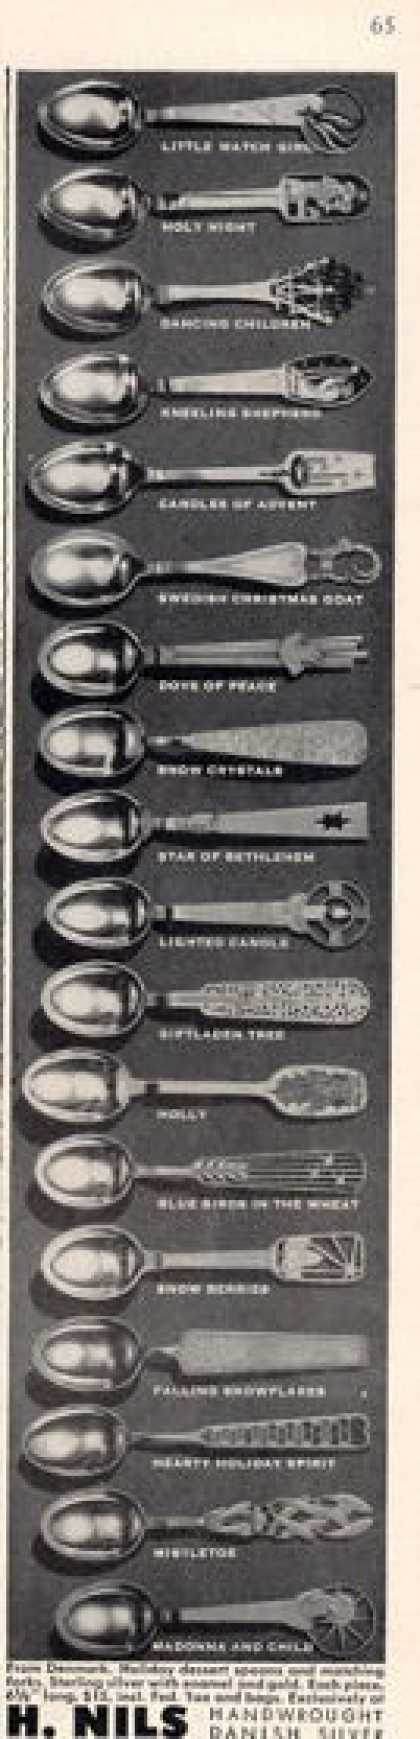 H. Nils Danish Silver Spoons 18 Patterns (1949)